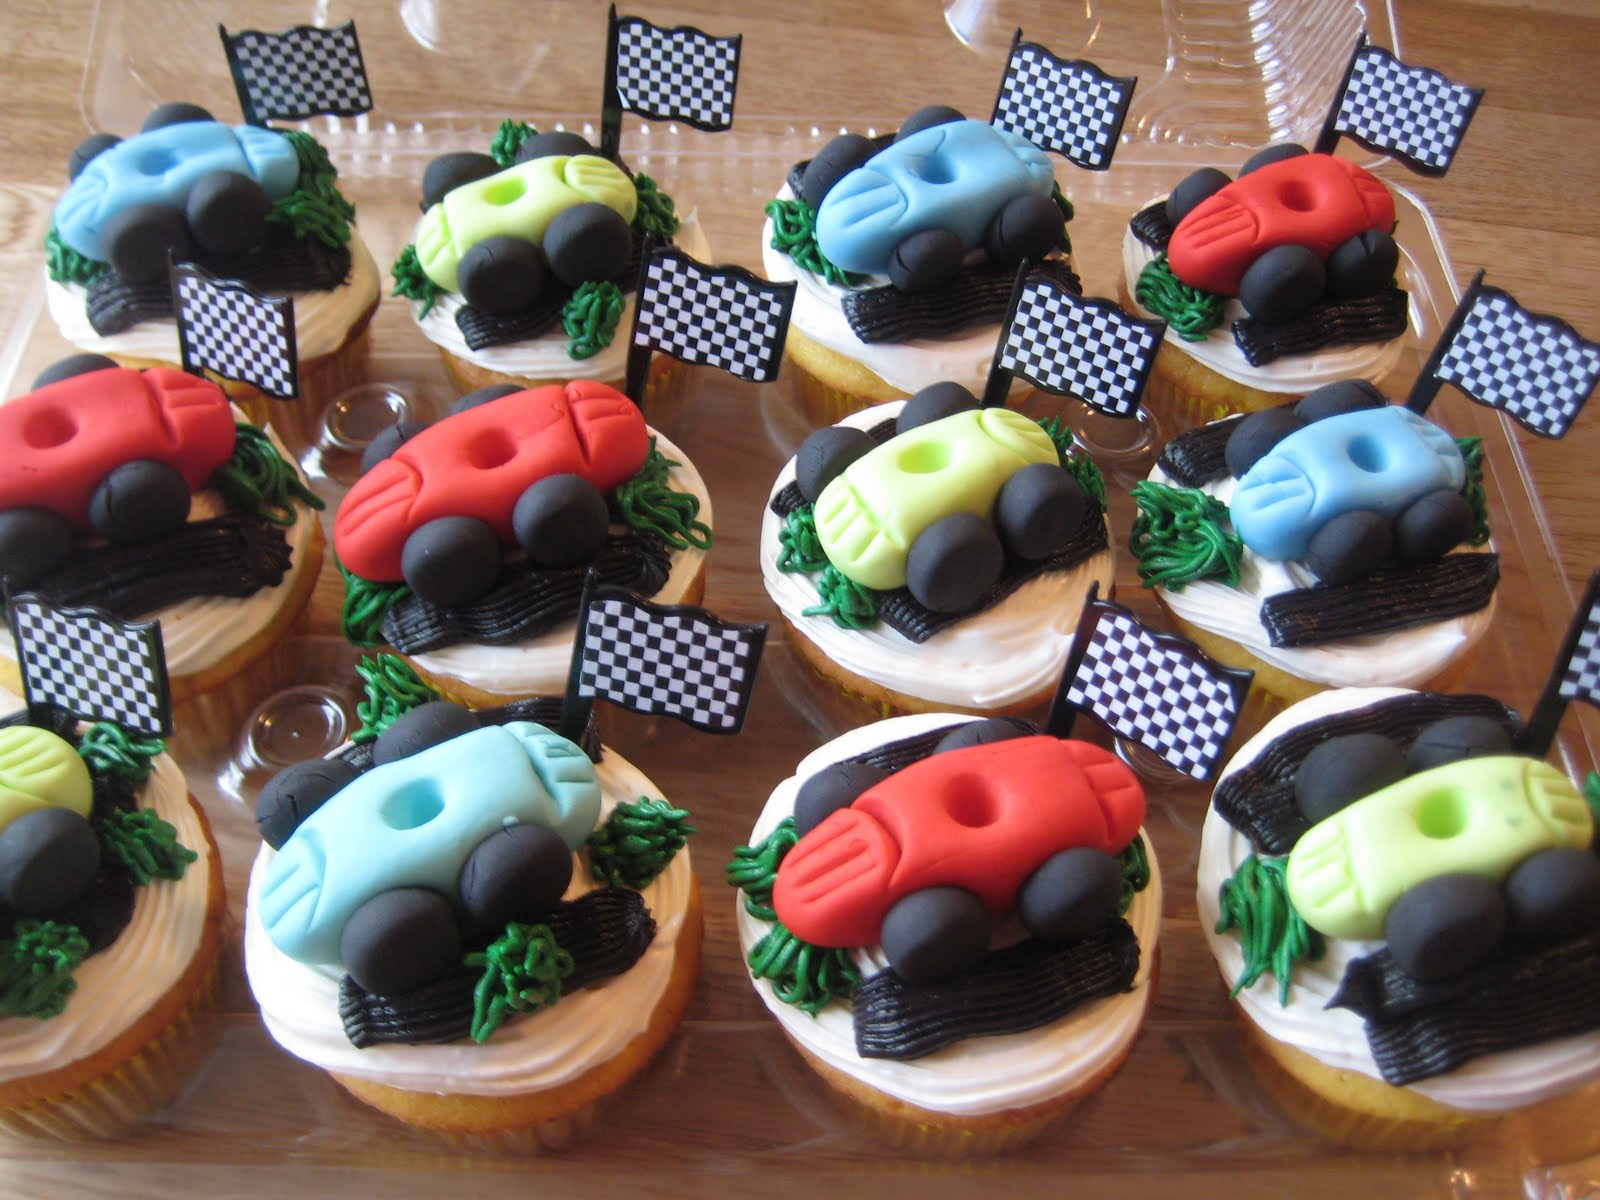 Pin With Edible Race Car Toppers For A Hot Wheels Themed Birthday Party Cake On Pinterest